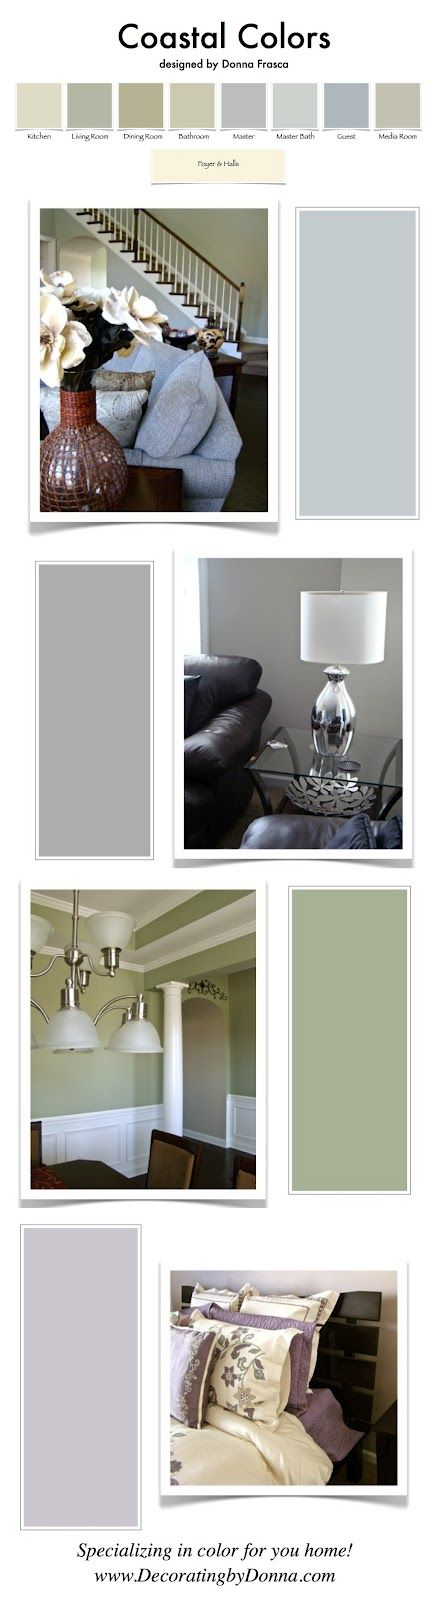 Coastal colors ideas 4 smee maria pinterest popular Sophisticated paint colors for living room